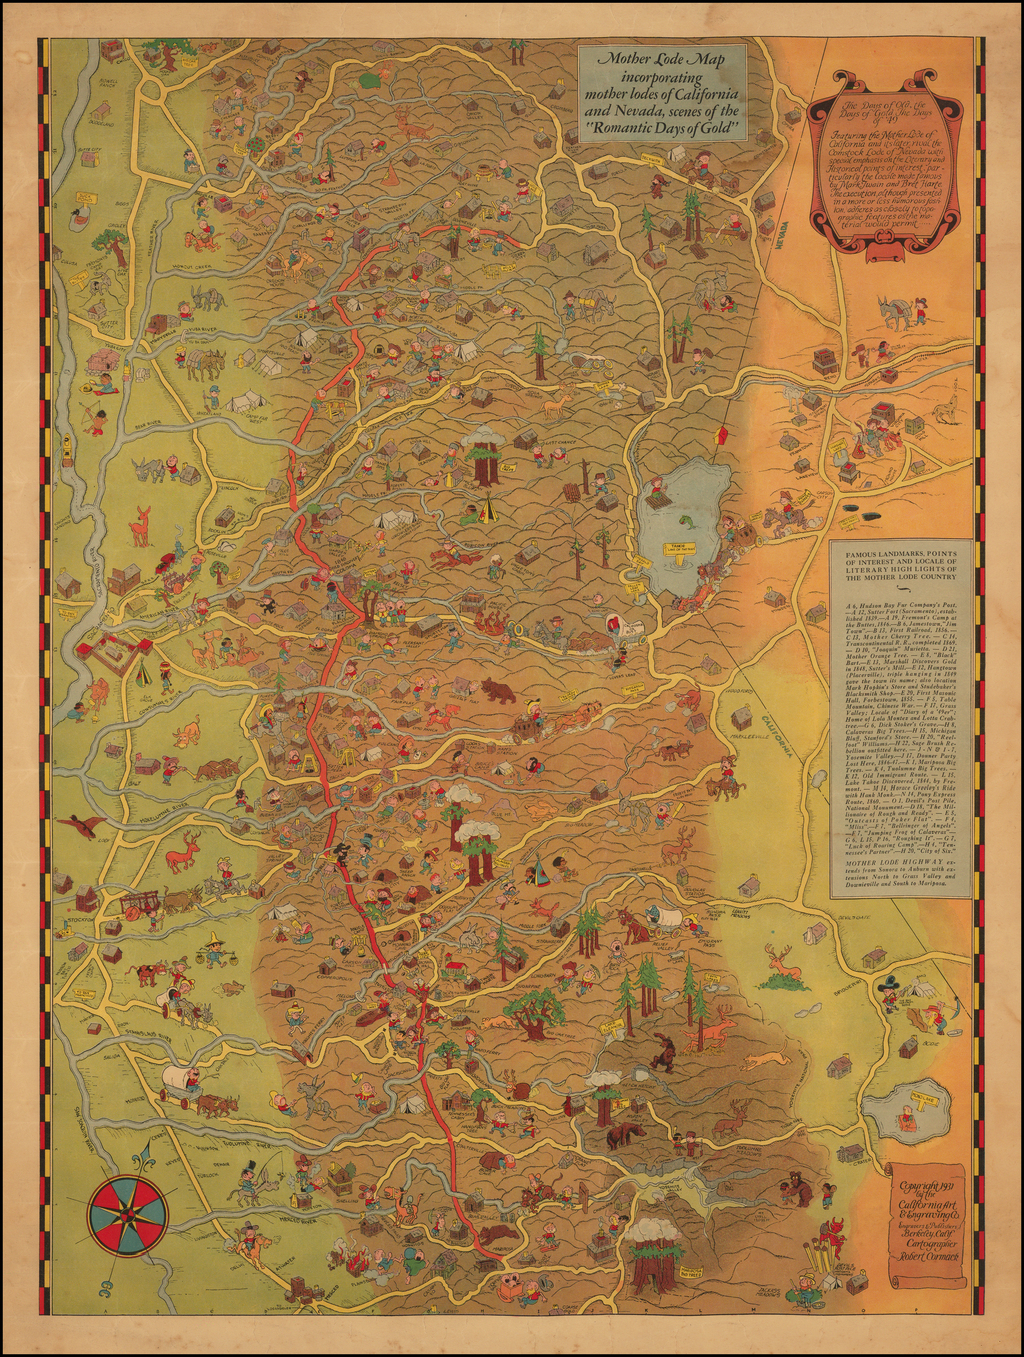 Map Of California Gold Country.Tahoe Gold Country Mother Lode Map Incorporating Mother Lodes Of